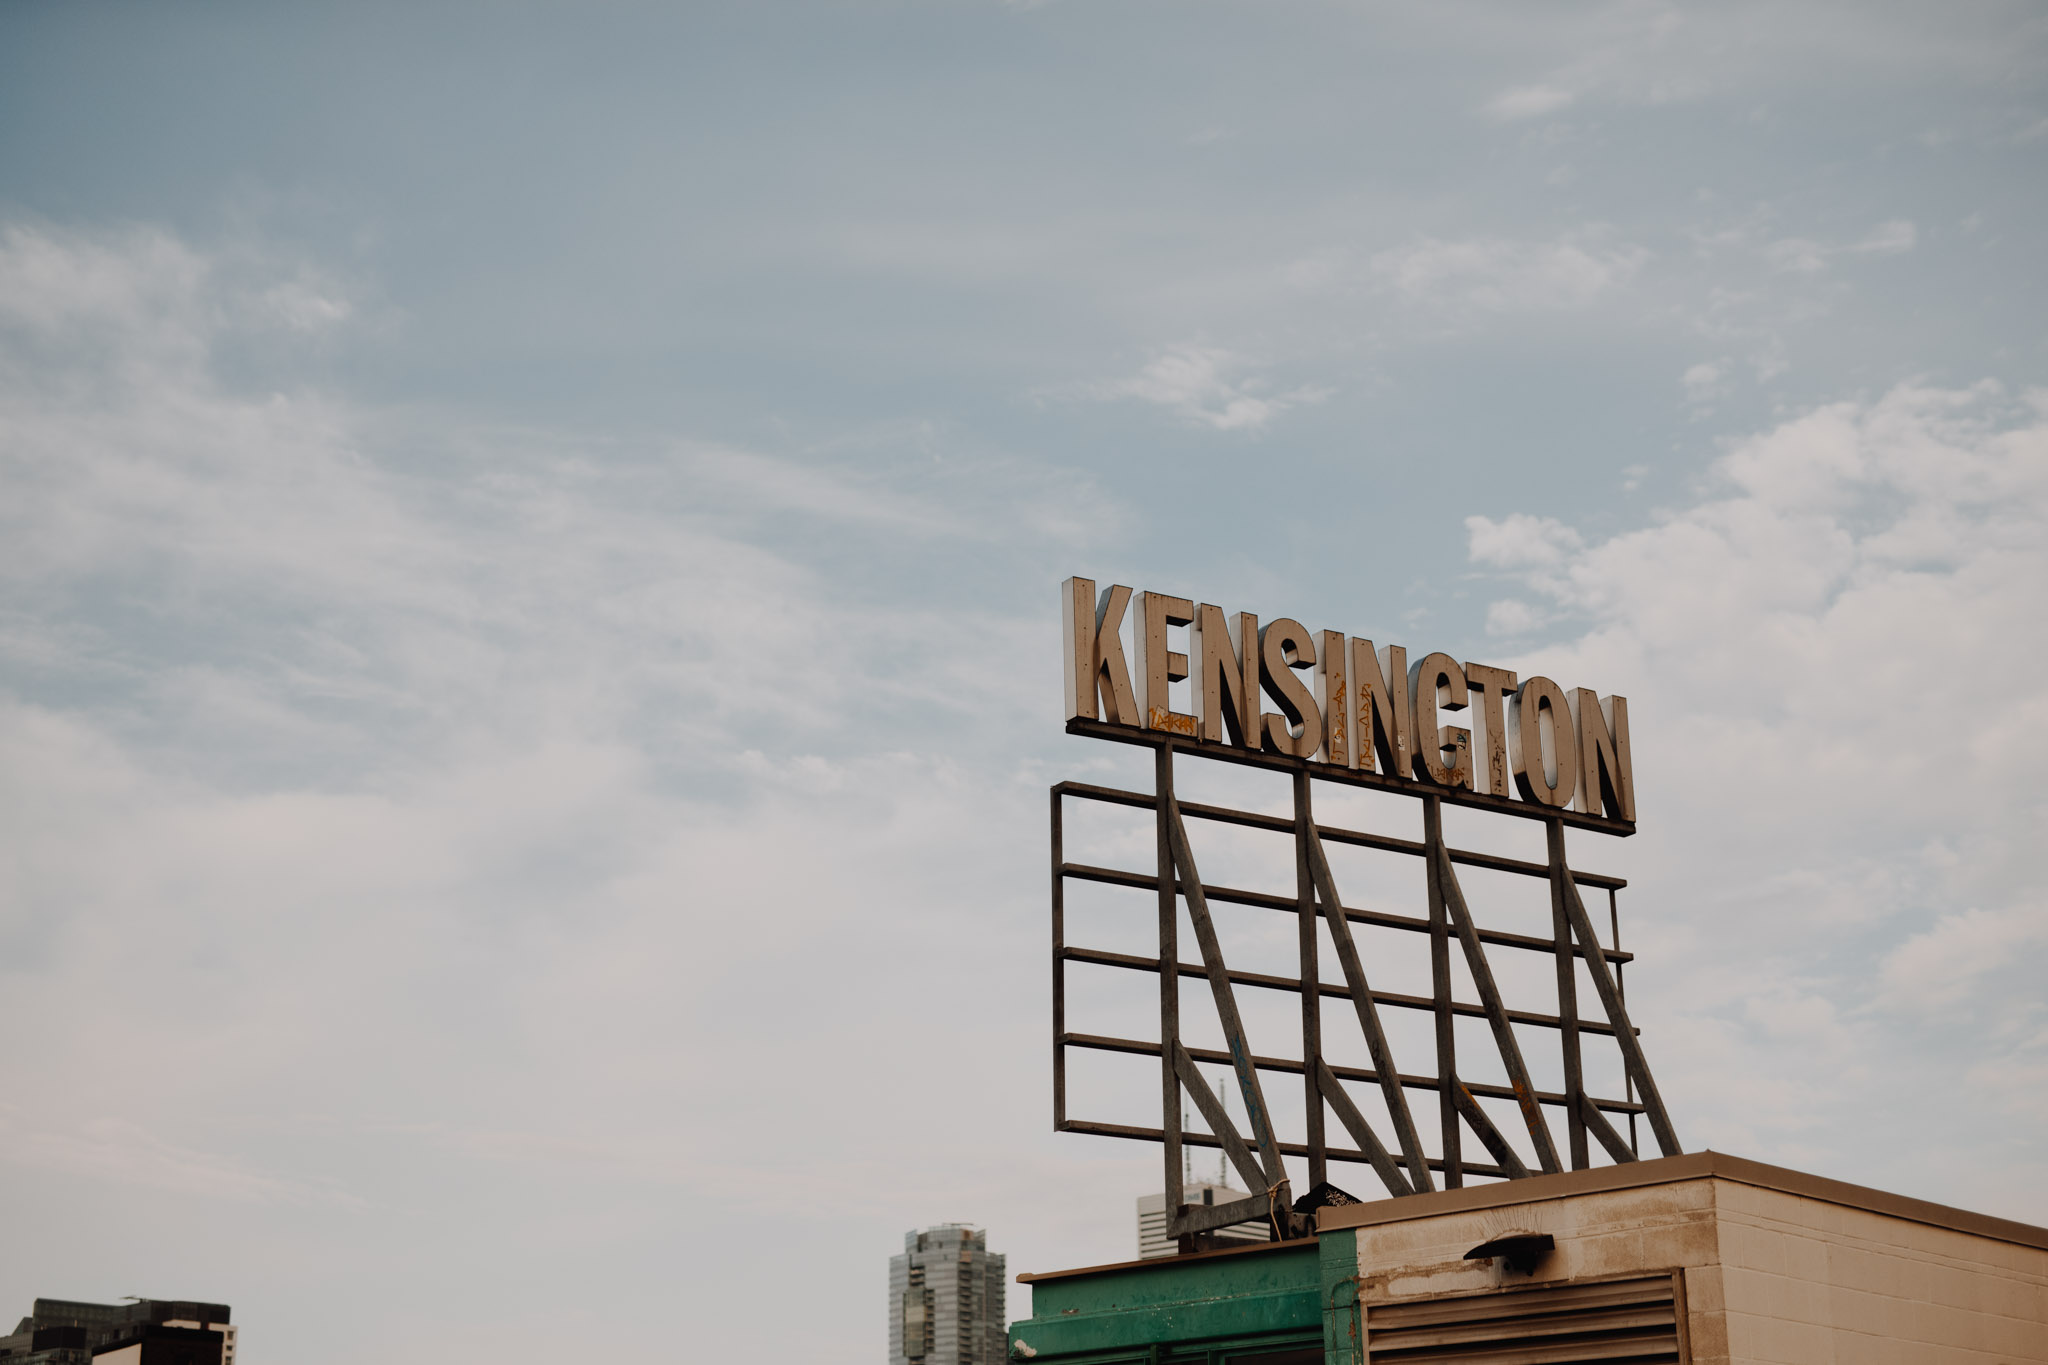 Kensington Market Sign. Kensington Engagement. Jennifer See Studios.